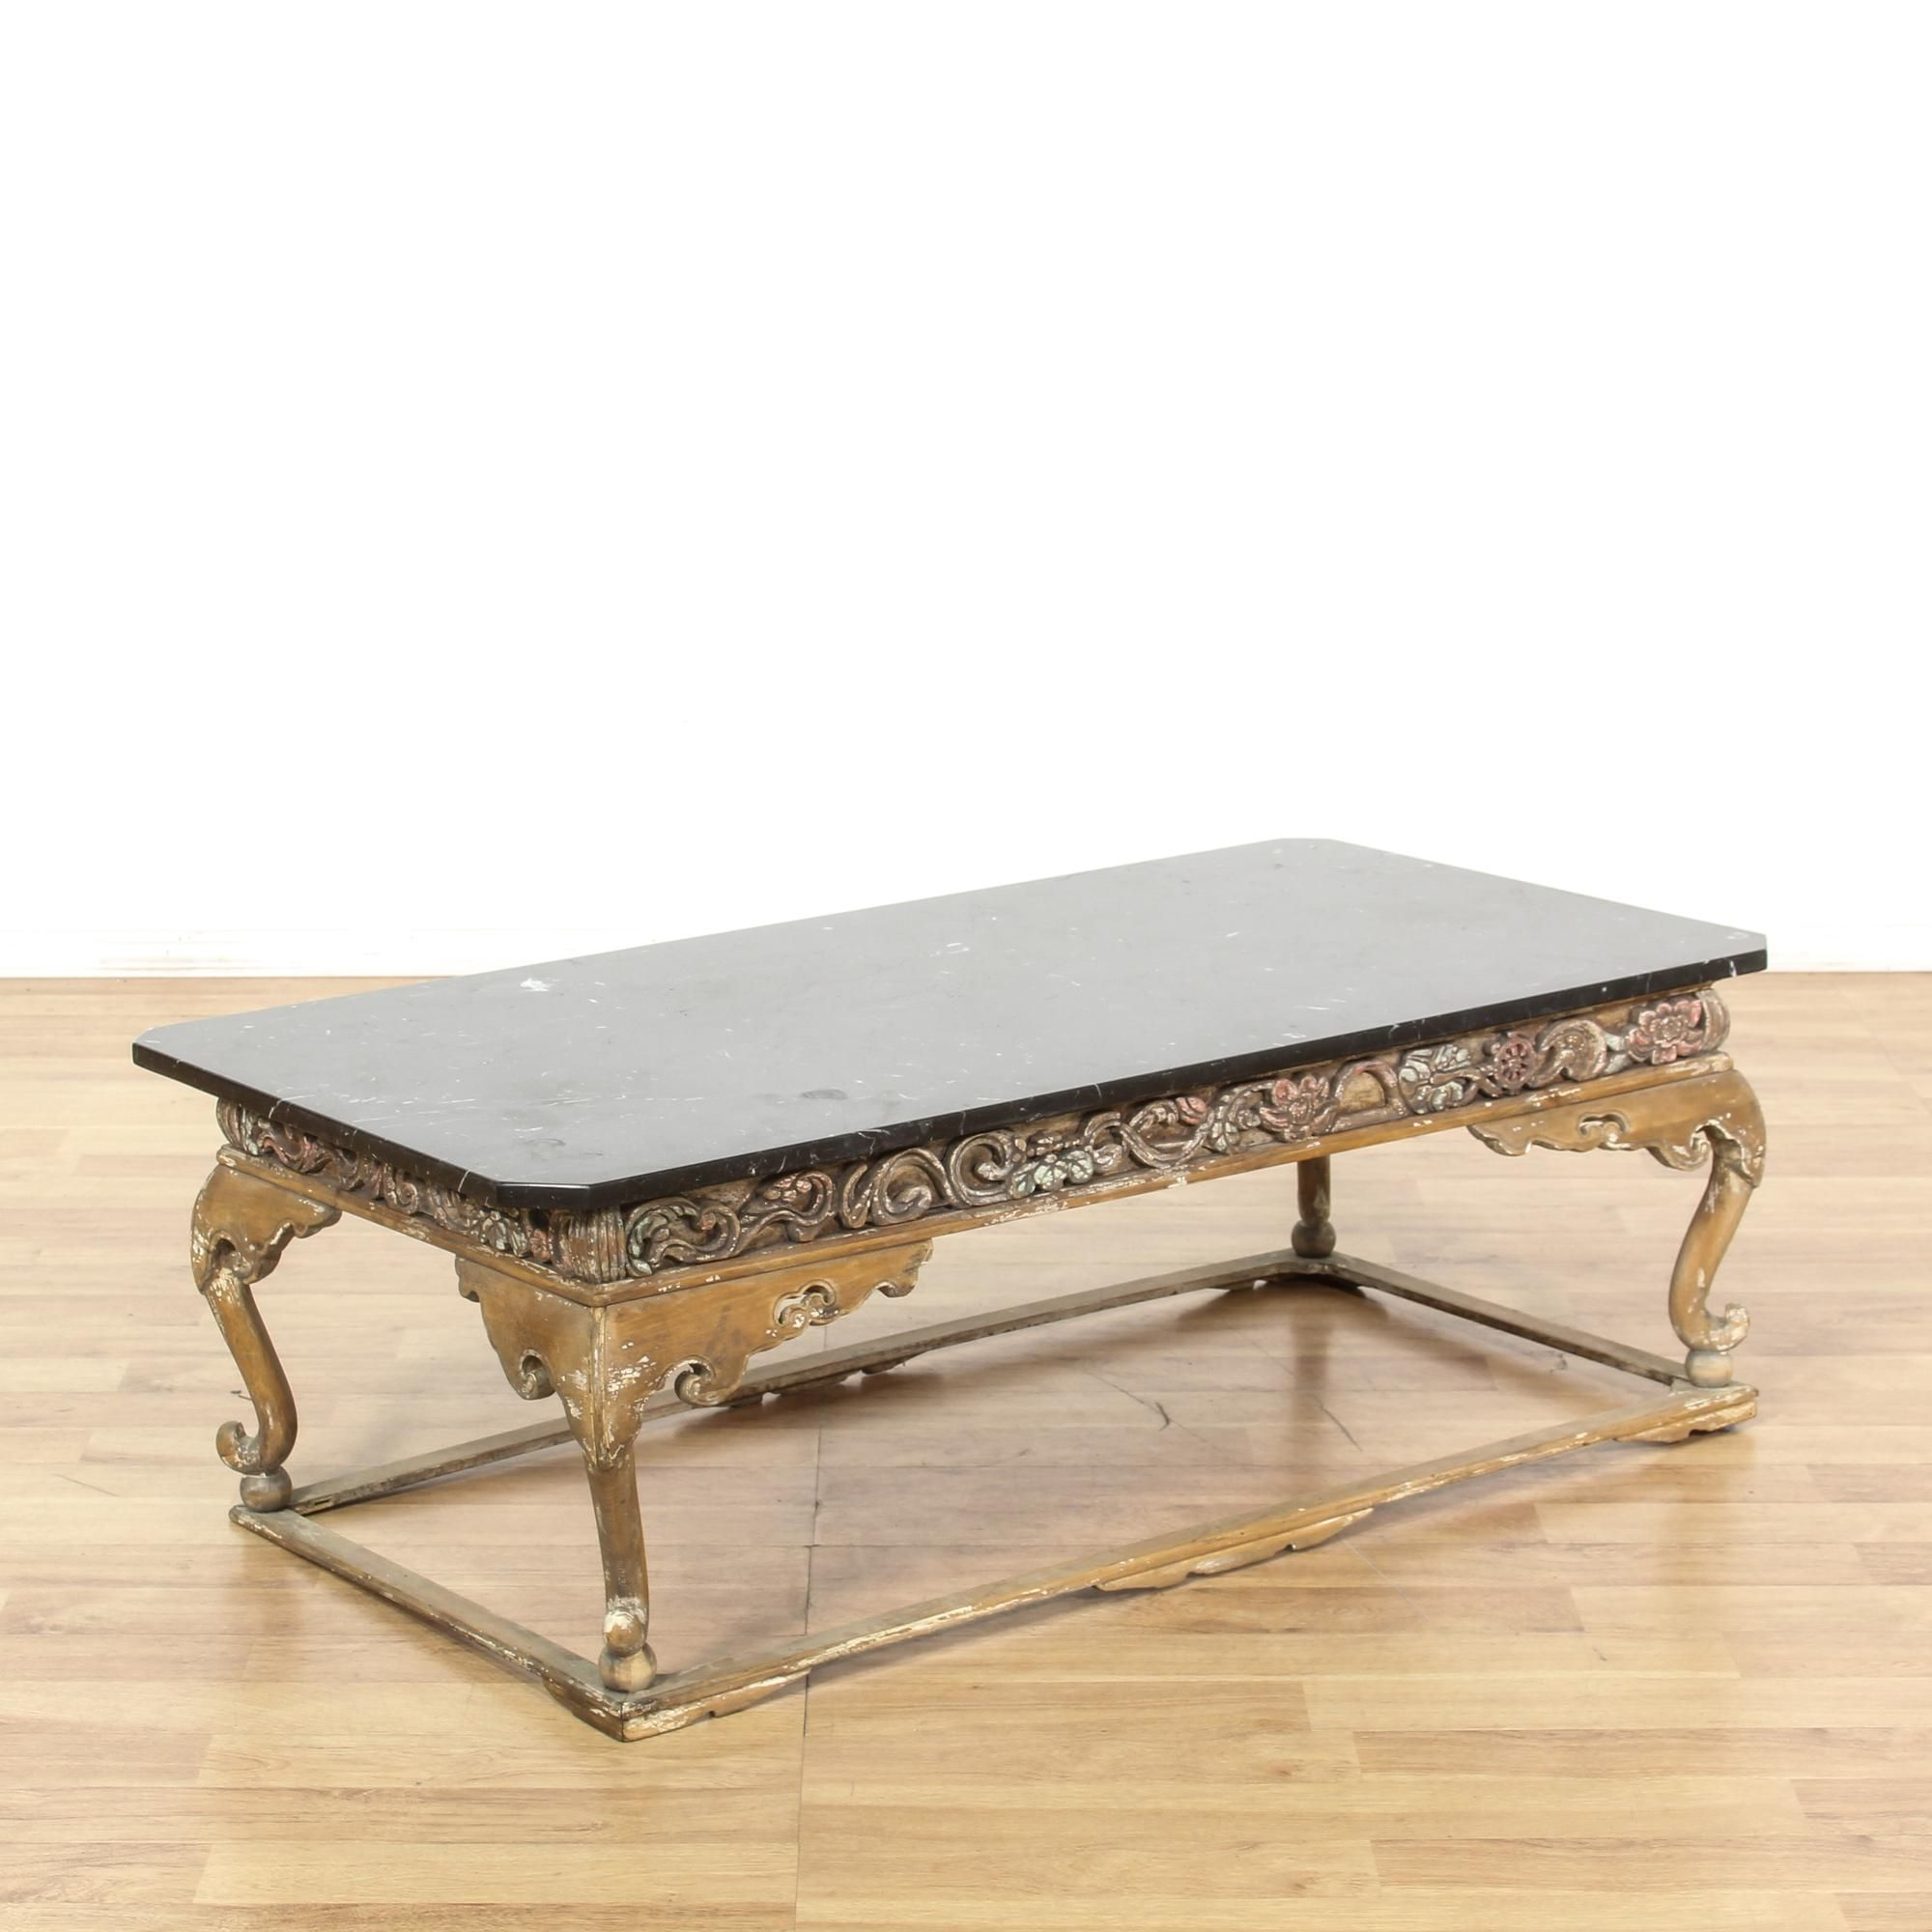 This Chinese coffee table is featured in a solid wood with